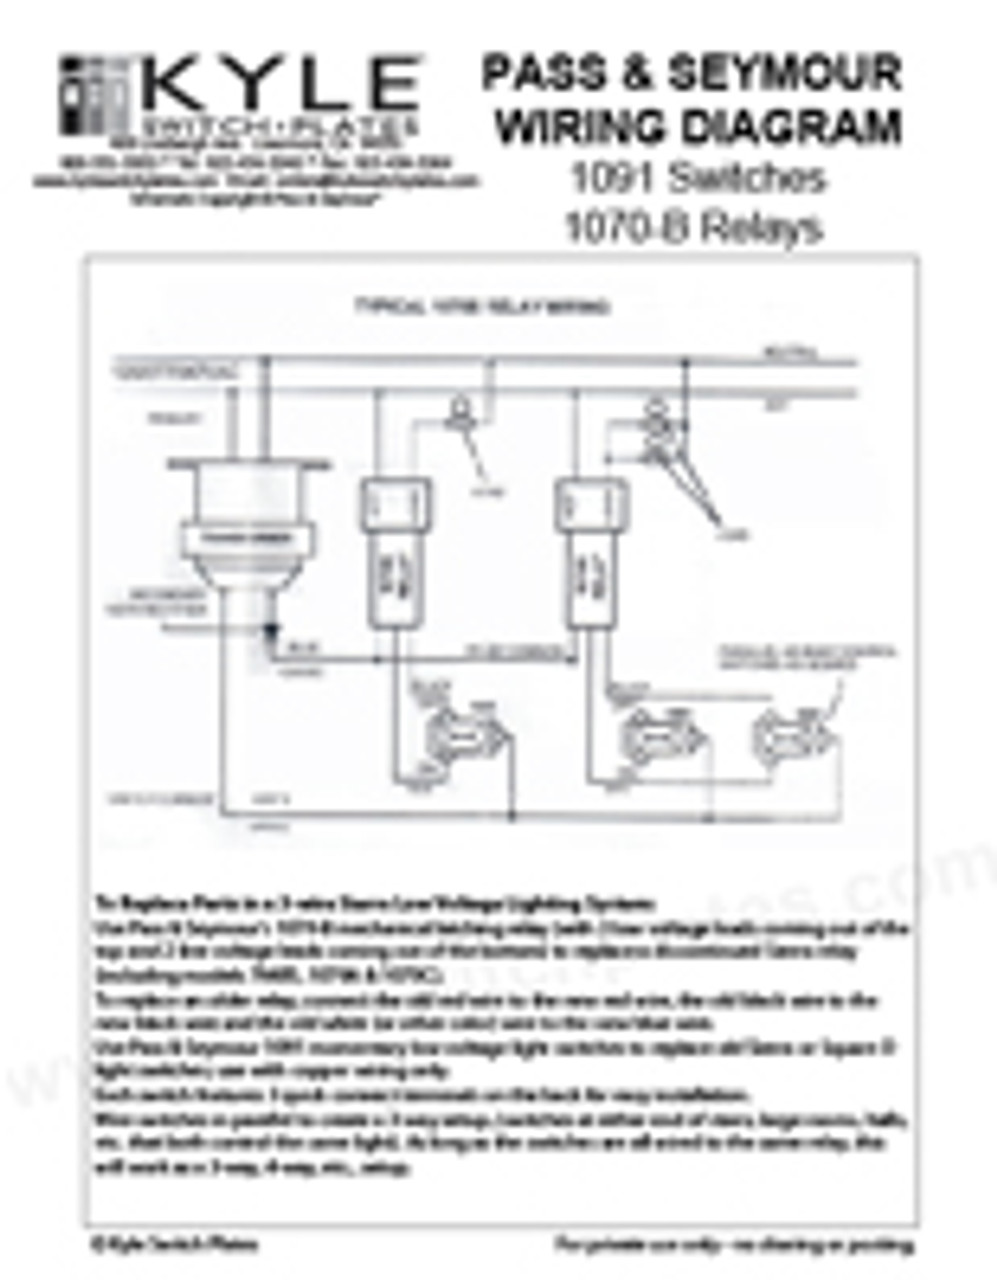 P&S Sierra Low Voltage Switch & Relay Wiring Guide - Download   1070 B Relay Switch Wiring Diagram      Kyle Switch Plates